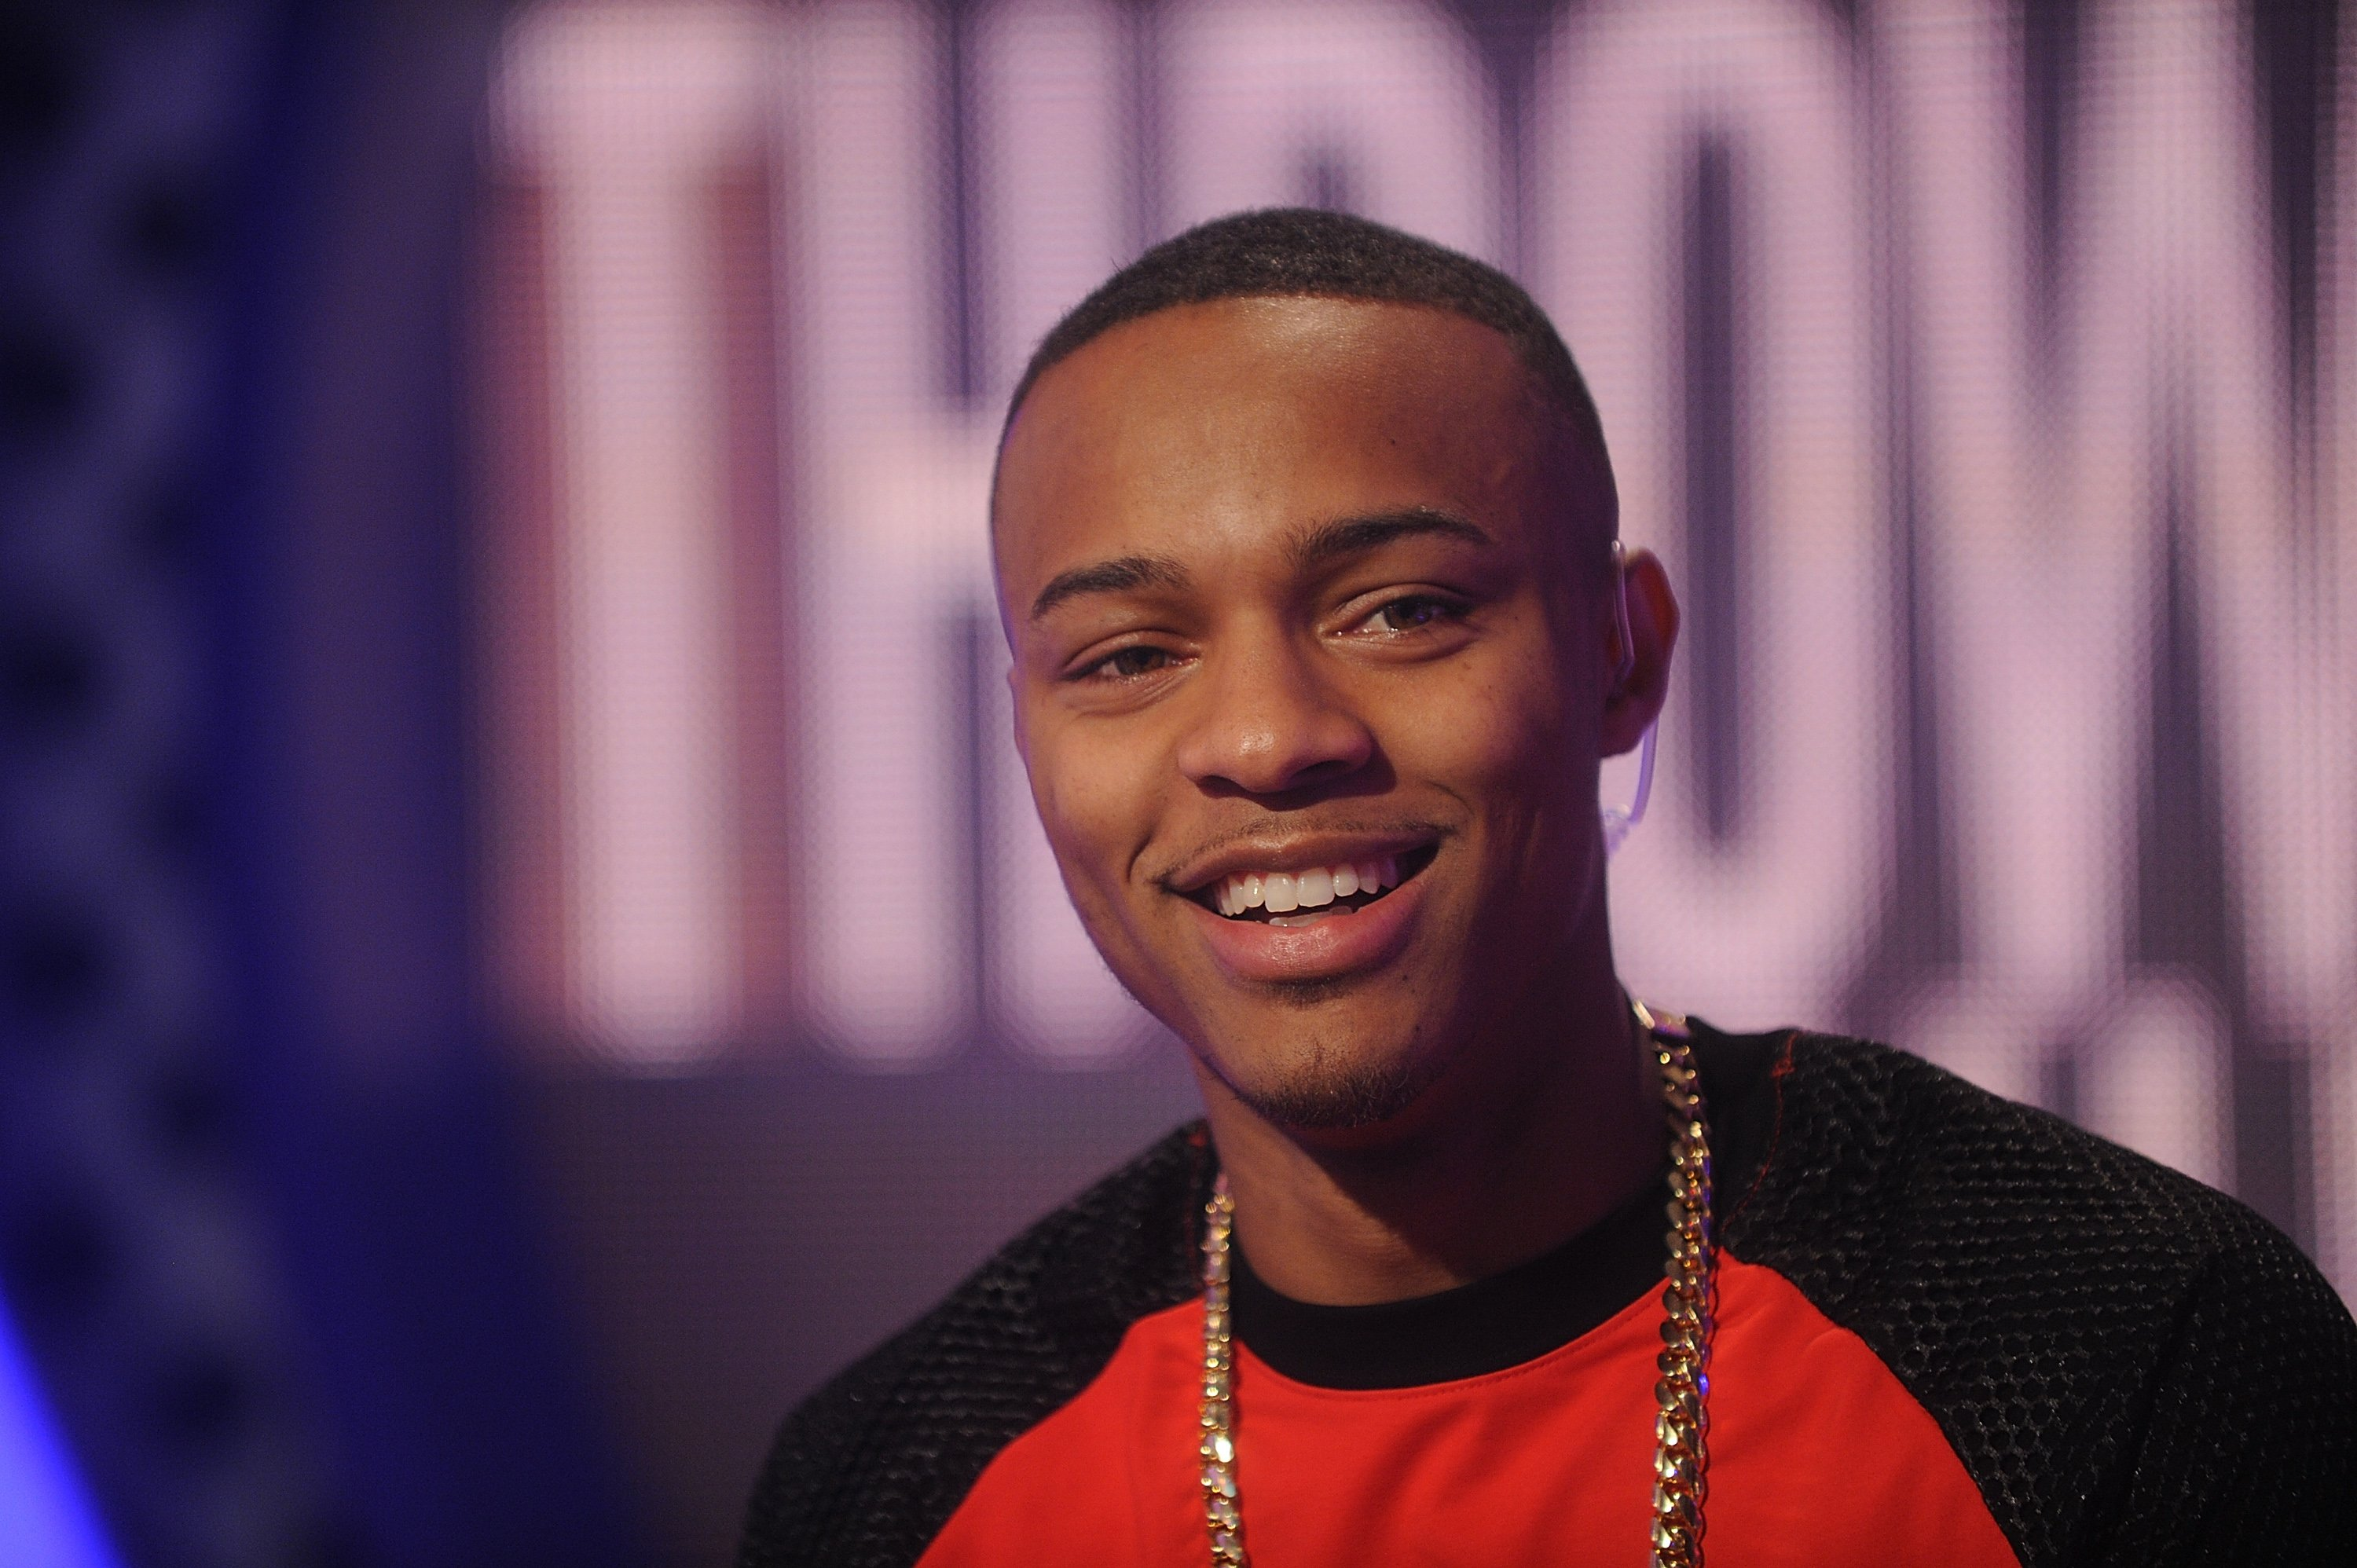 Bow Wow at the set of BET 106 and Park on June 11, 2014 in New York City.| Source: Getty Images